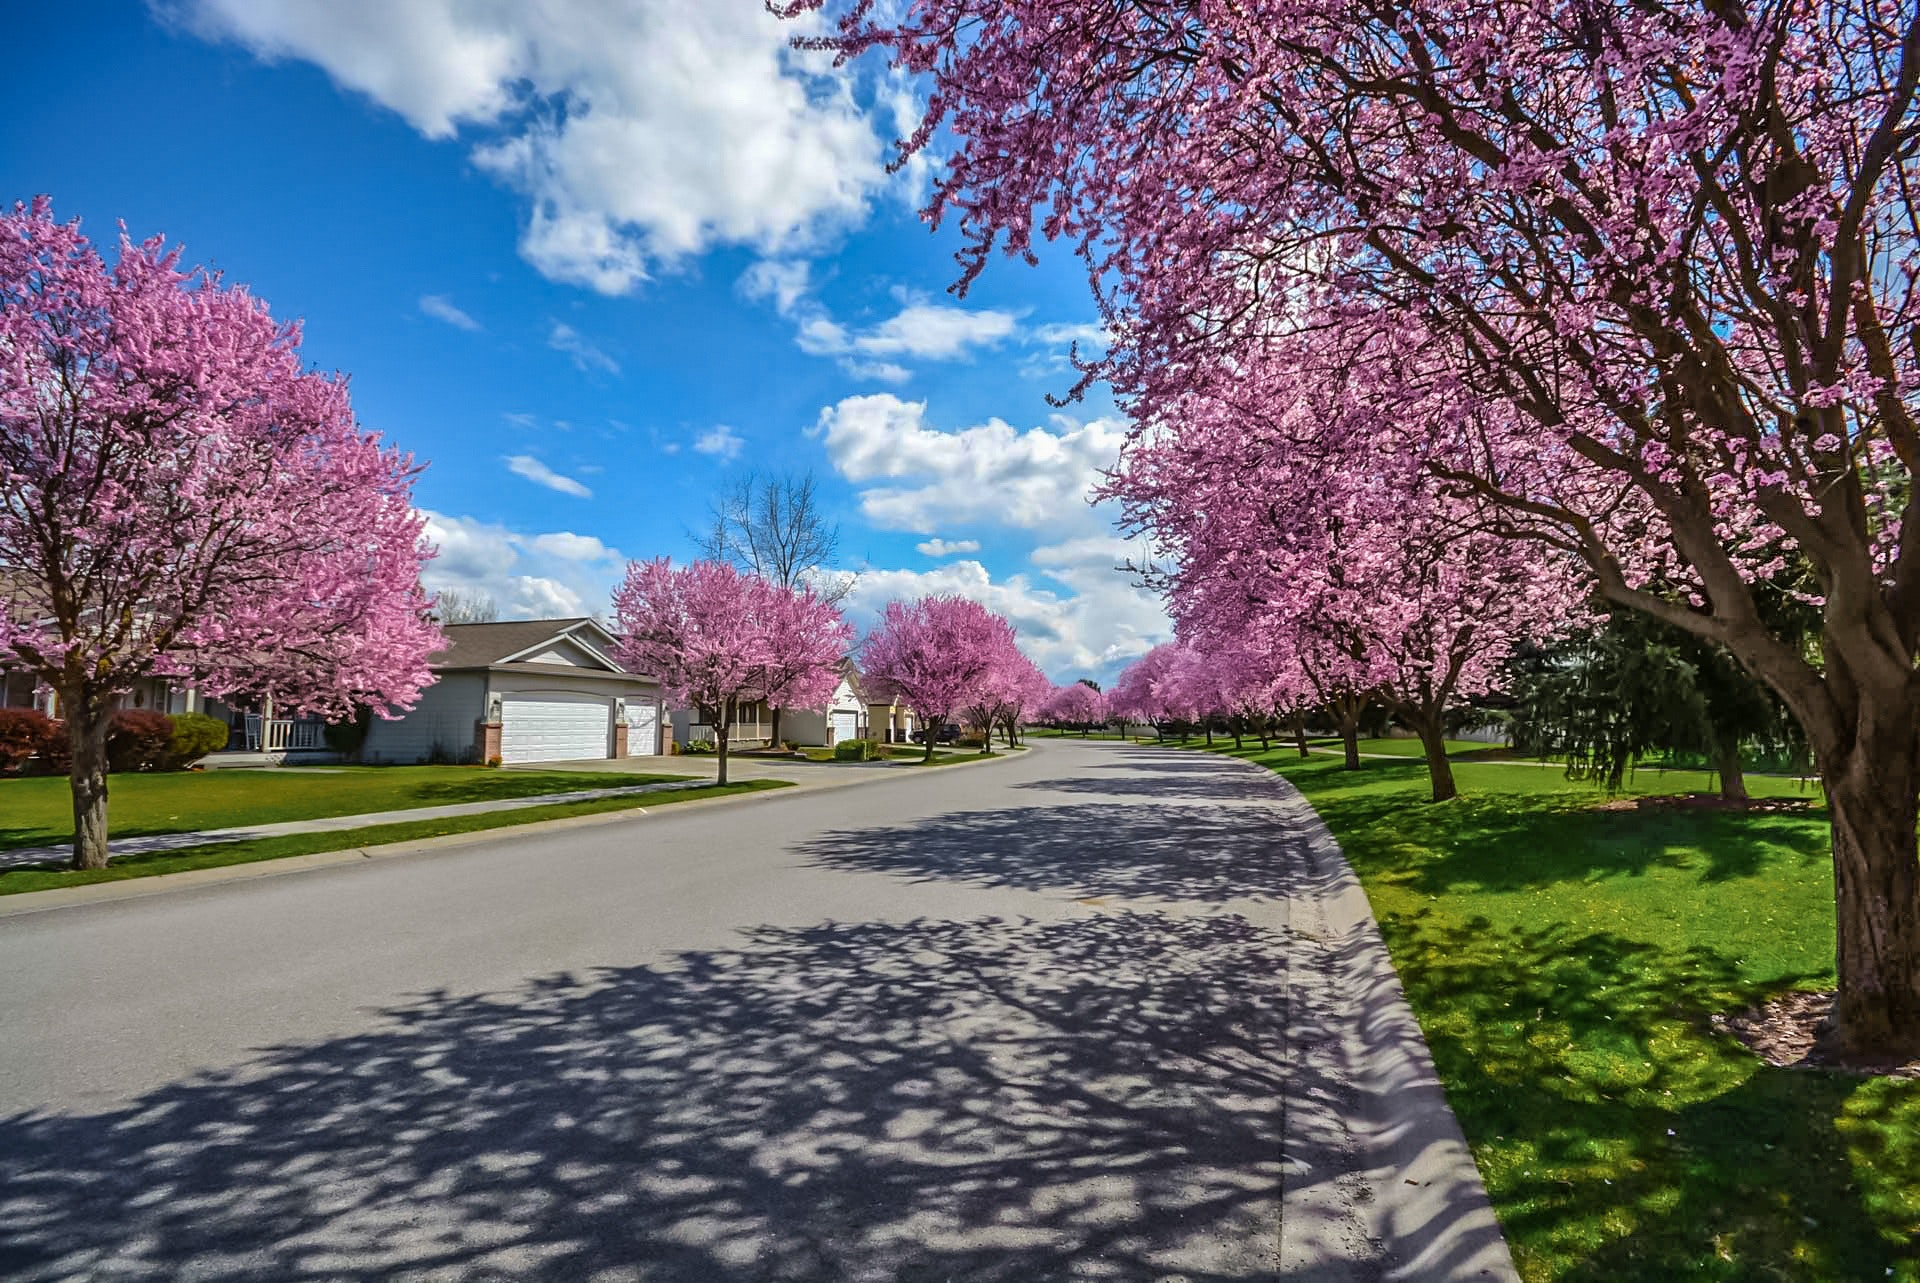 Top 8 Tips on How to Choose the Right Neighborhood